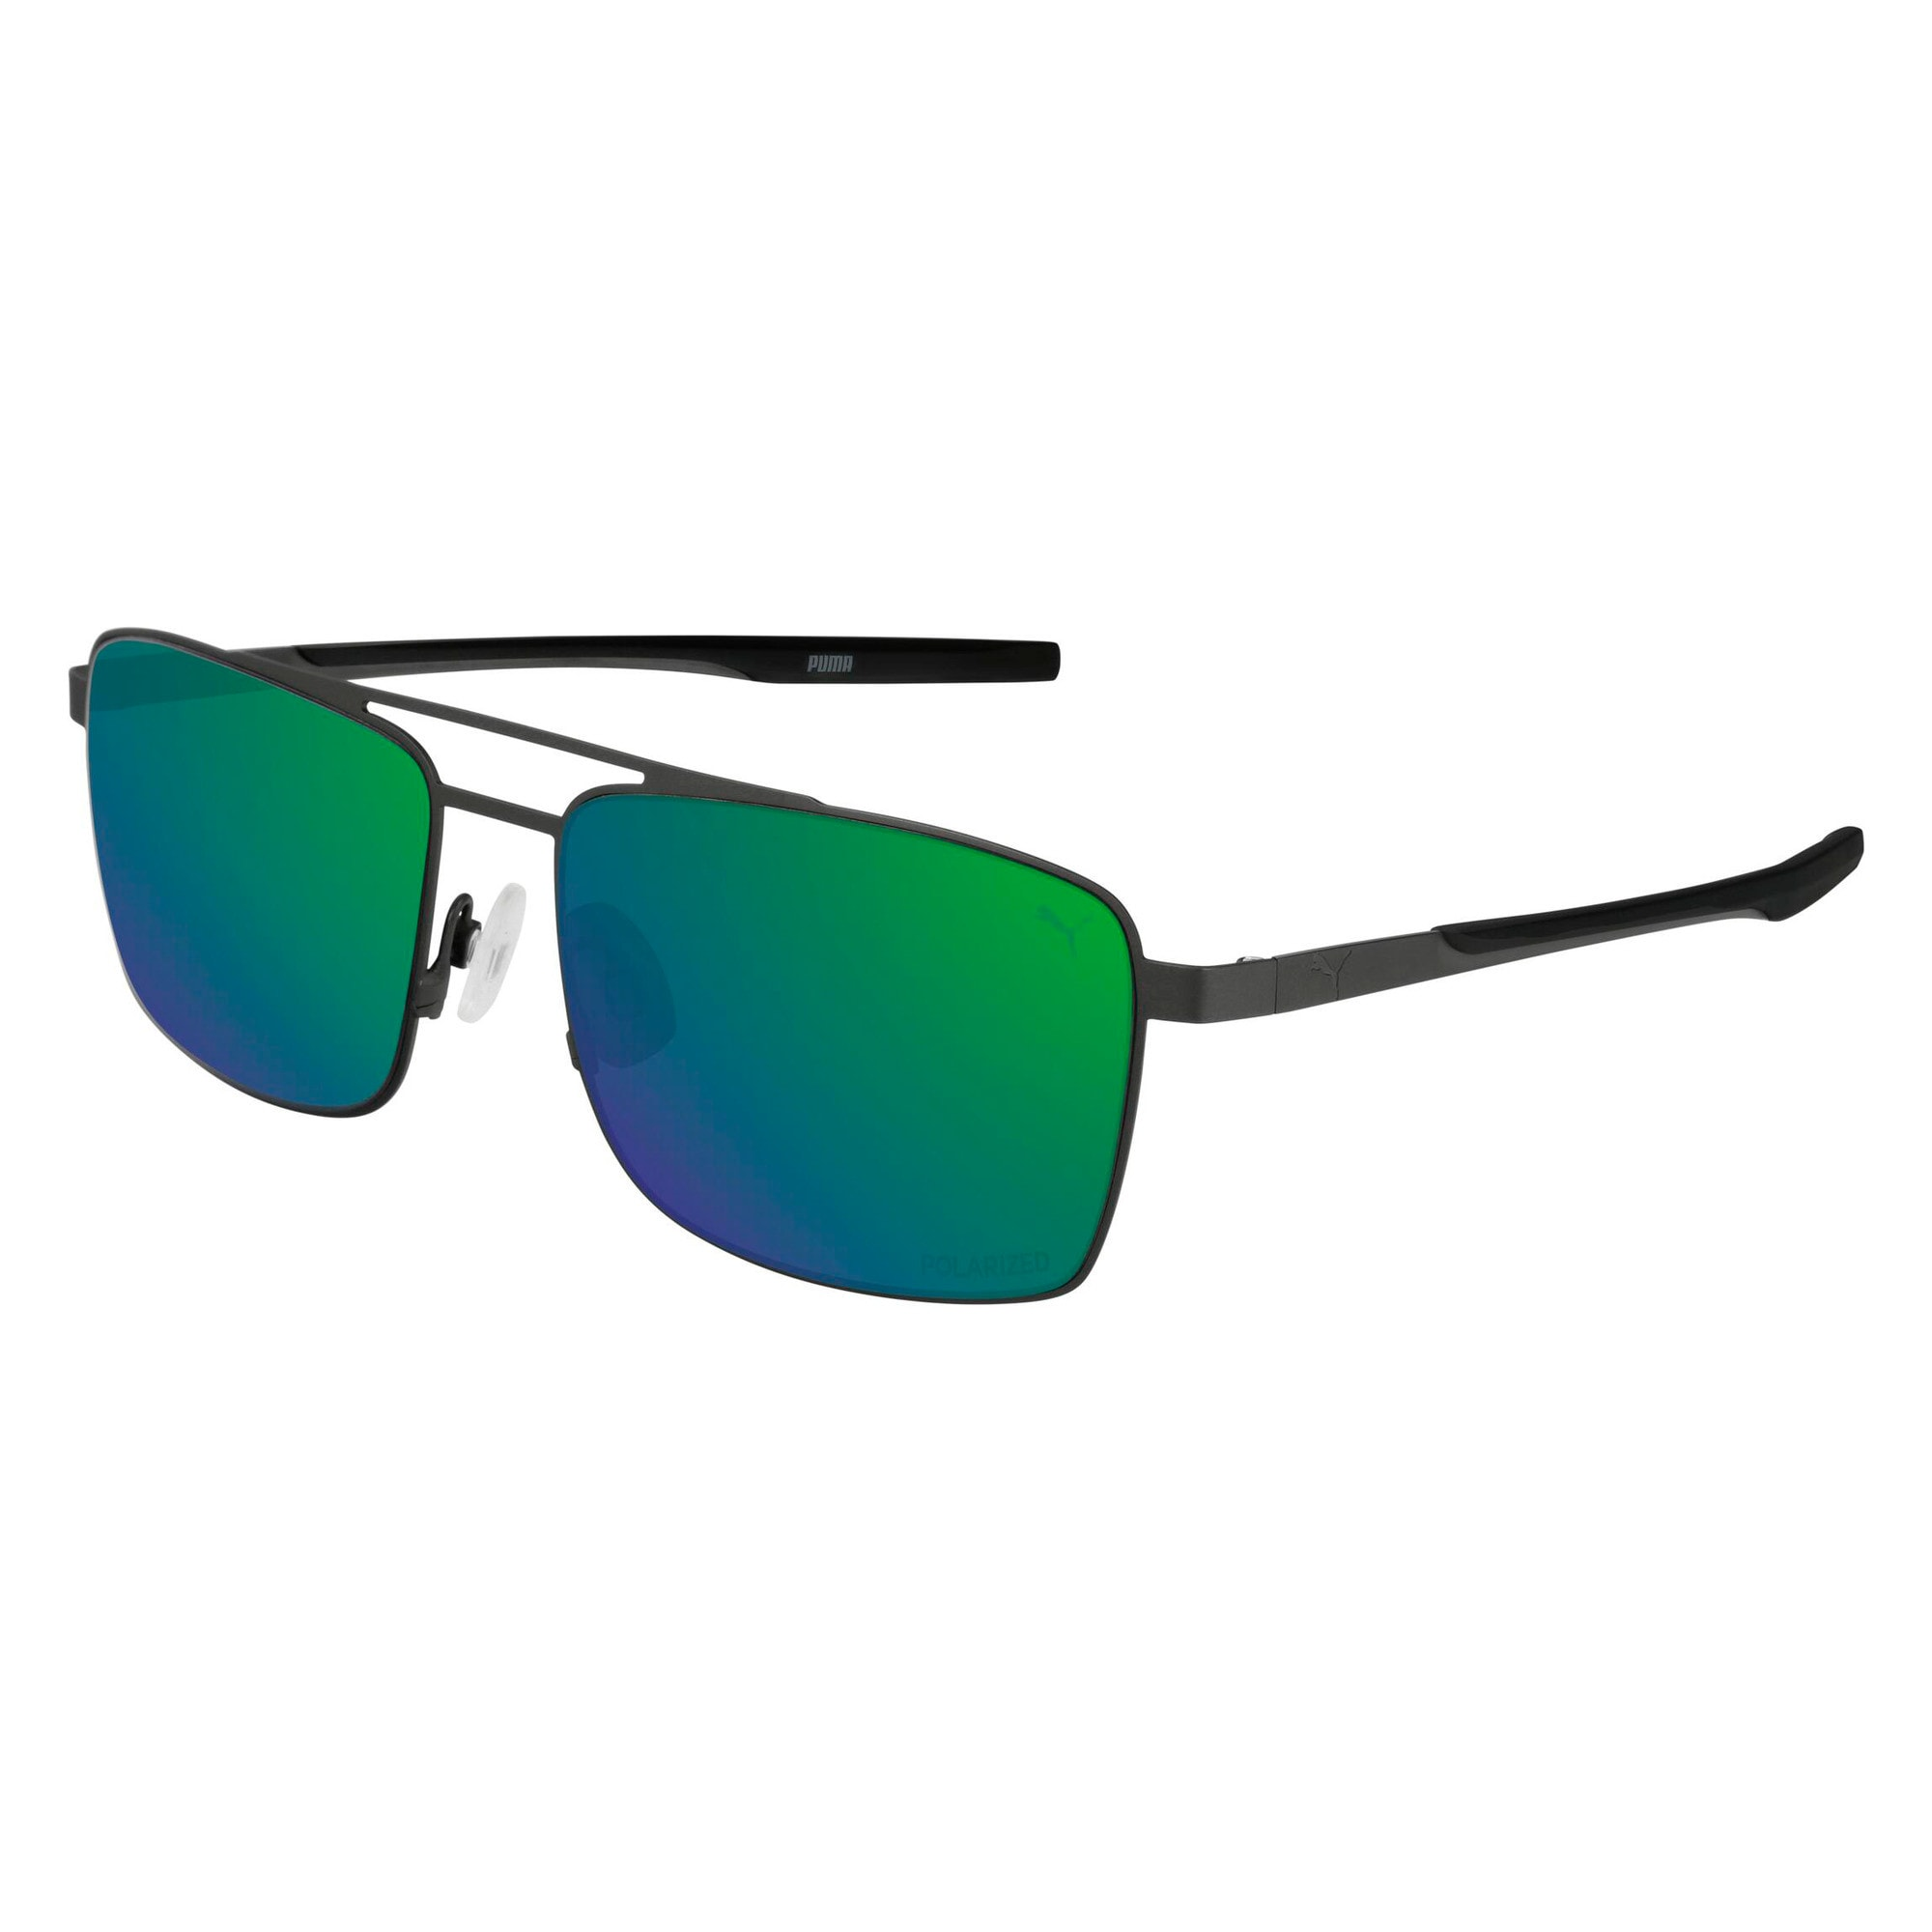 Thumbnail 1 of Newport Aviators, RUTHENIUM-1, medium